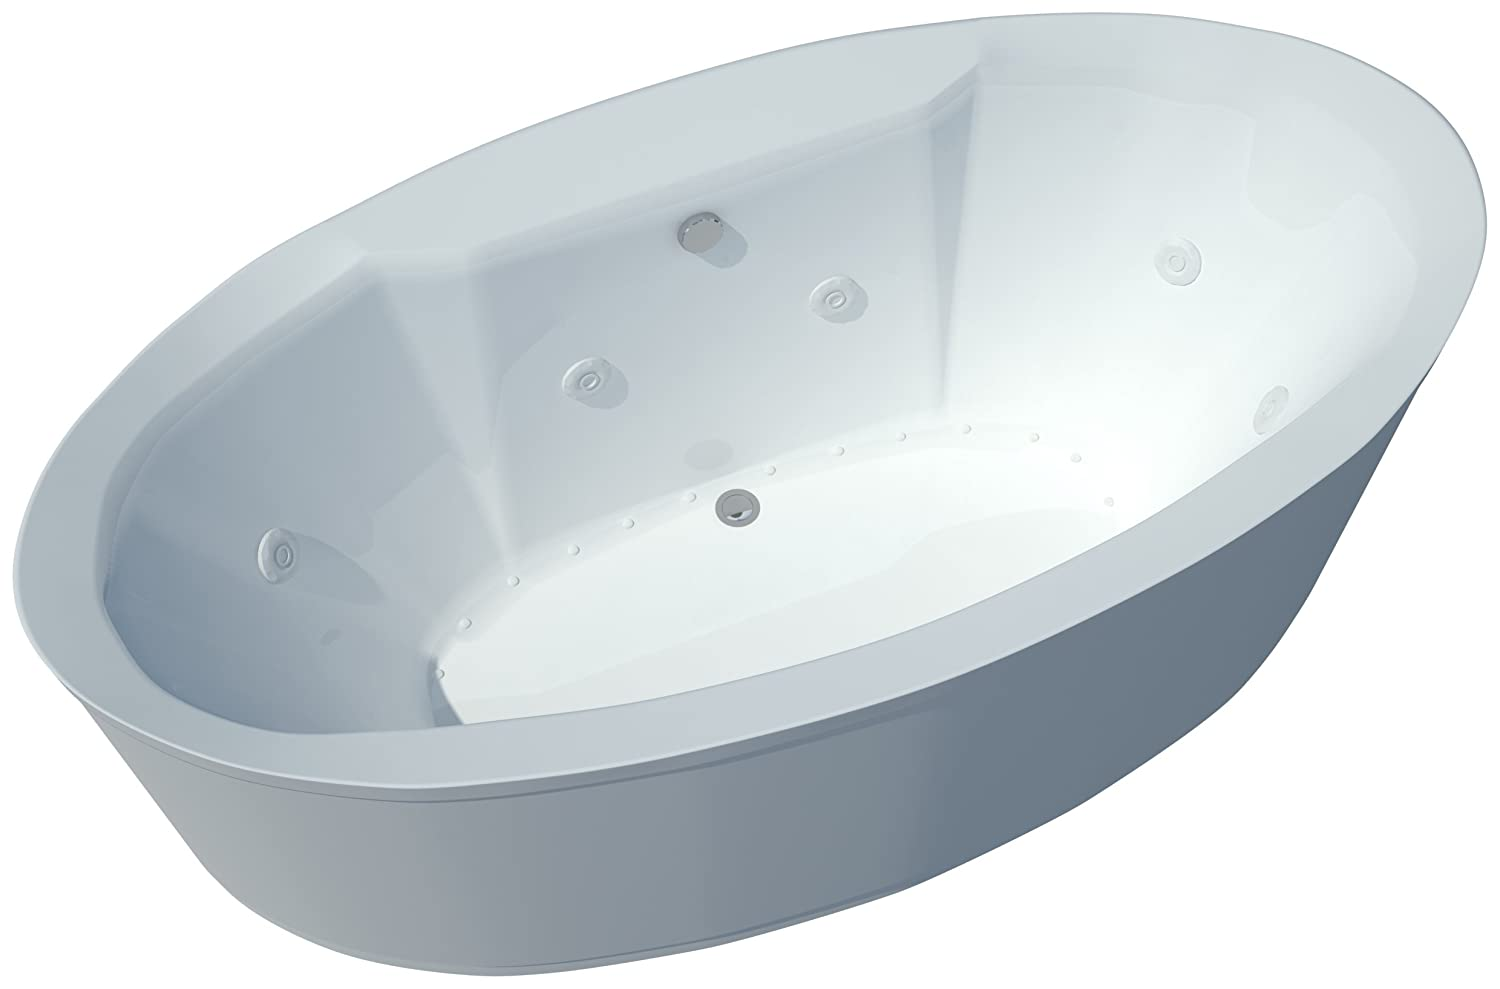 Sea Spa Tubs S3468SD Tubs Suisse 34 by 68 by 23-Inch Rectangular Air ...